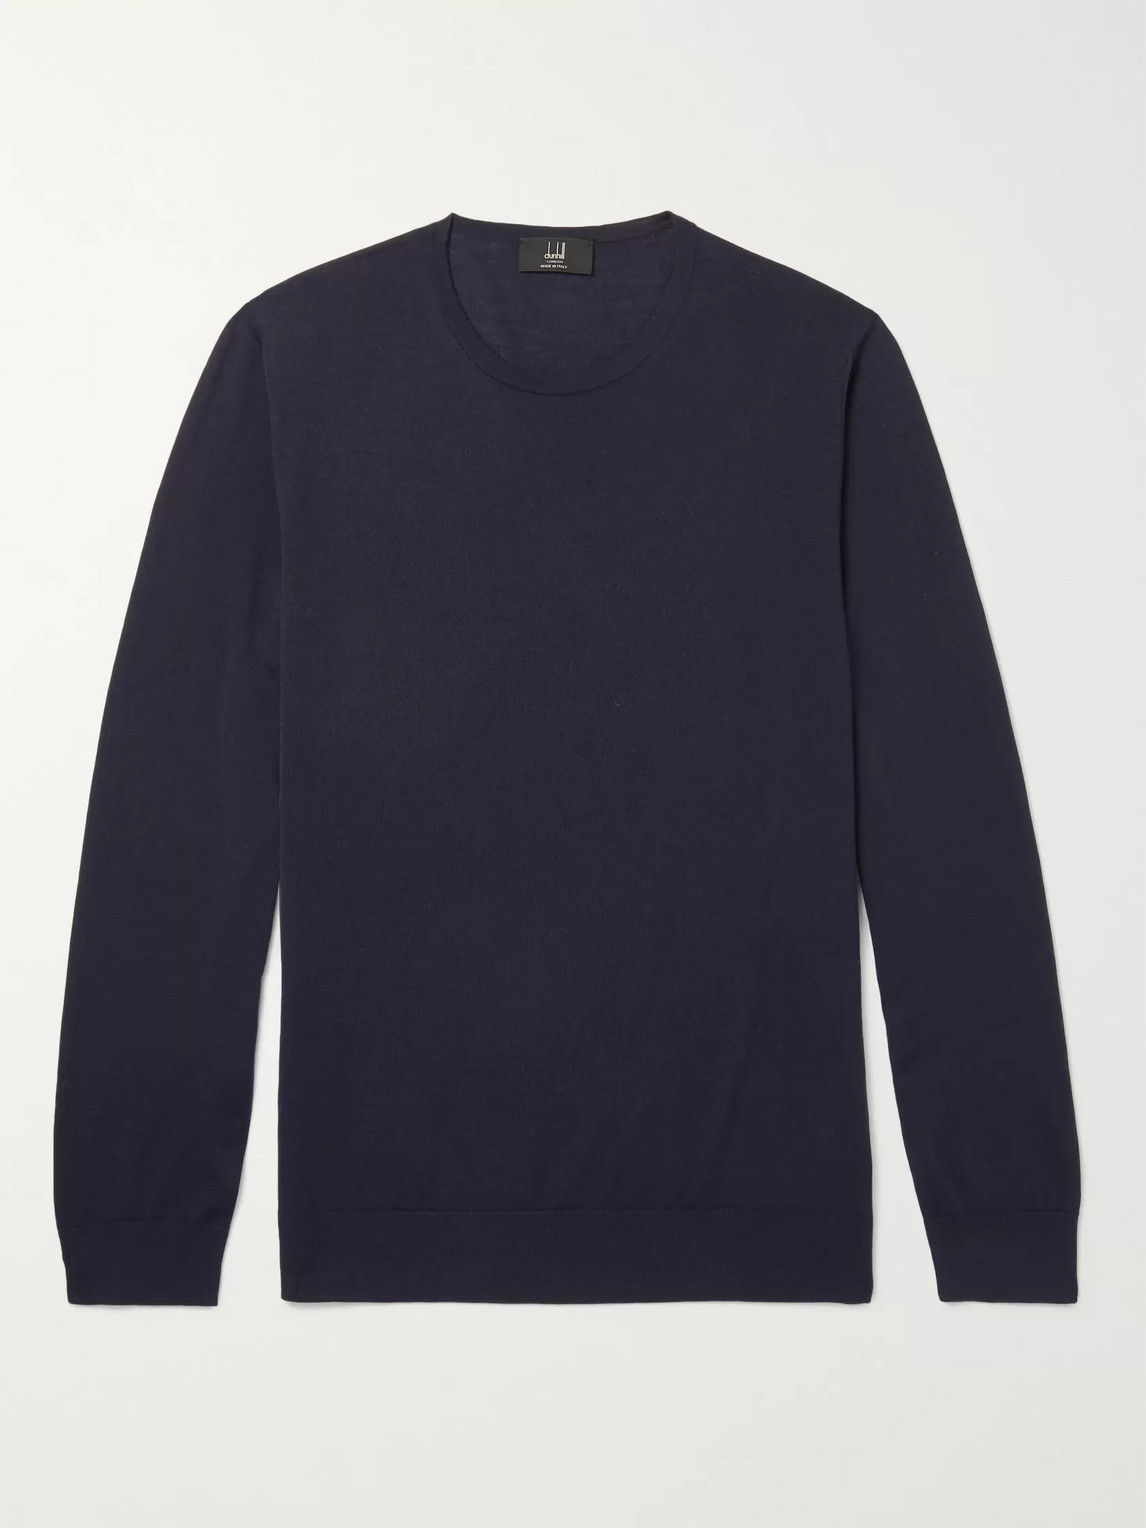 Dunhill Merino Wool Sweater In Blue